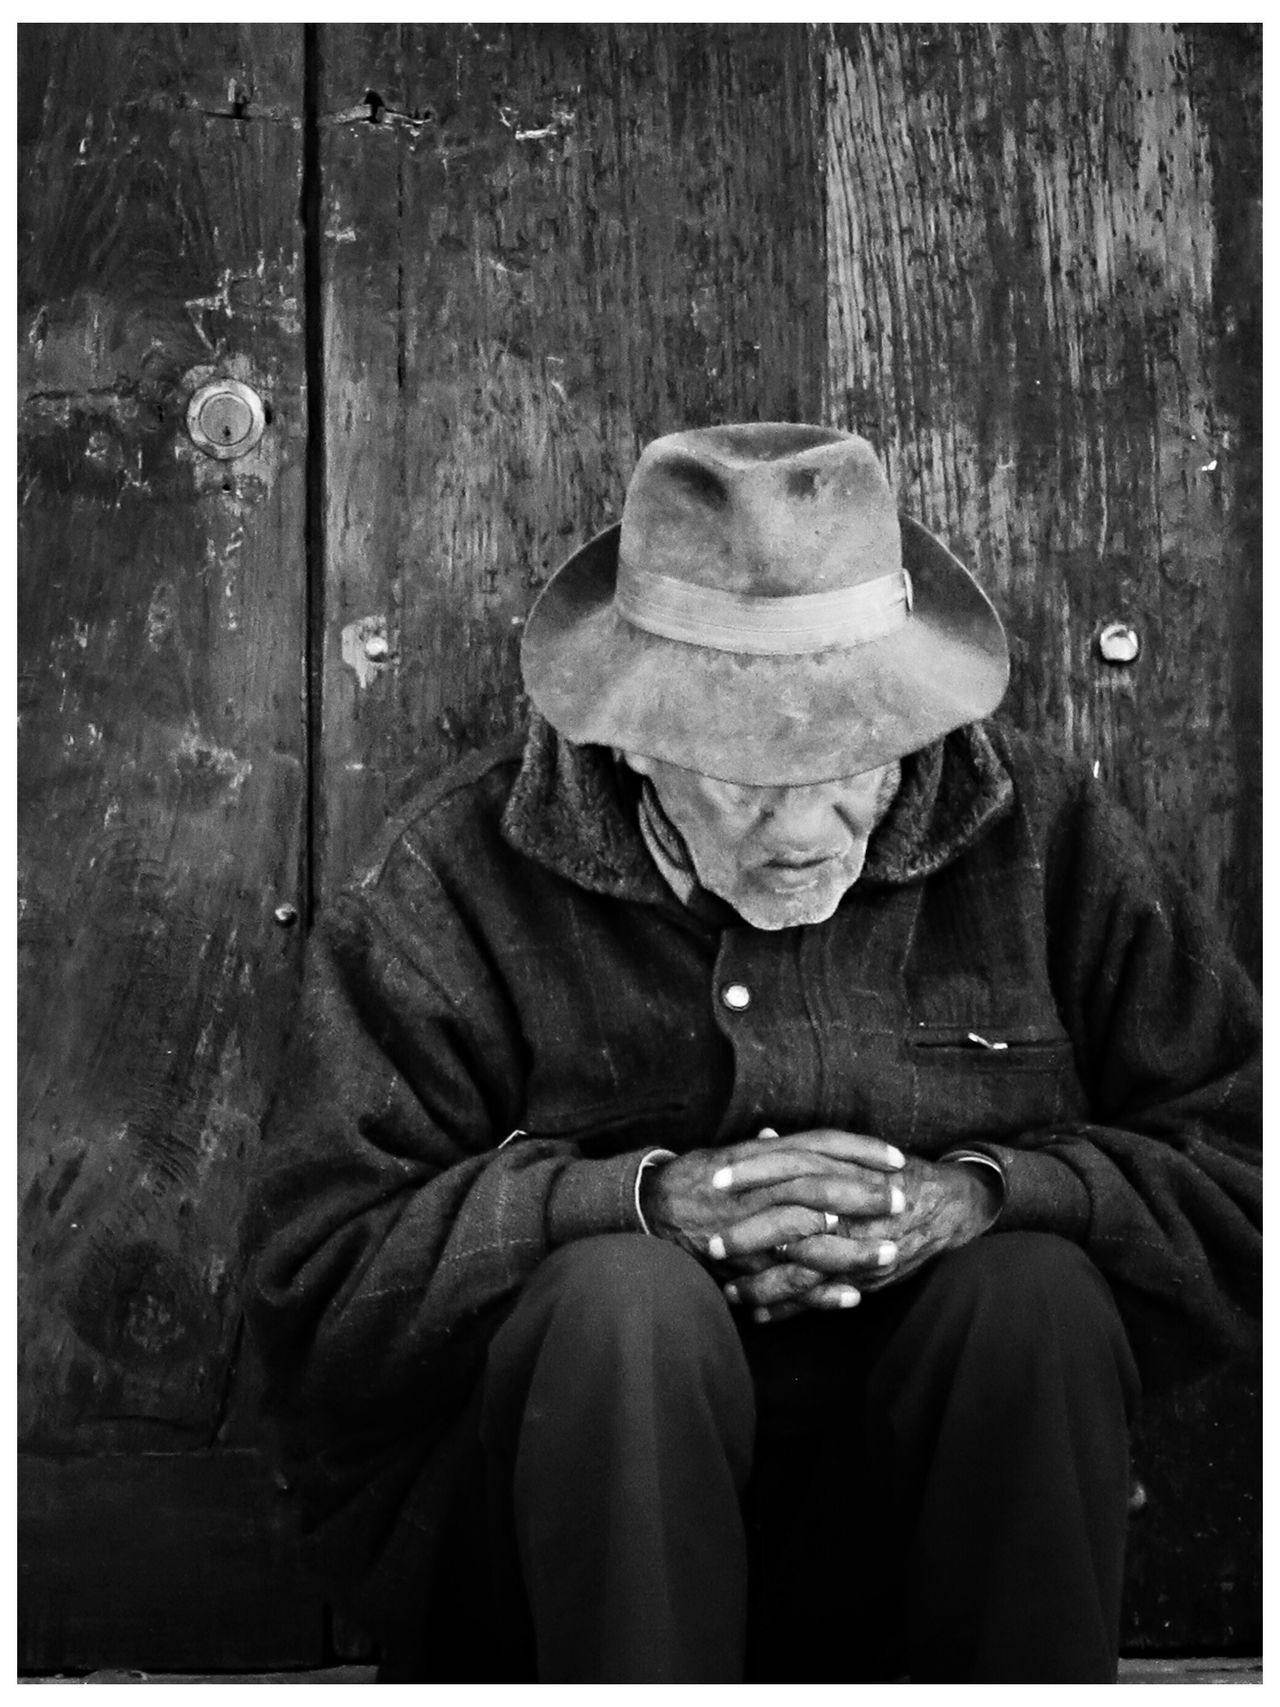 Lapaz Bolivia EyeEm Best Shots - Black + White Streetphoto_bw Monochrome Blackandwhite Tadaa Community EyeEm Best Edits Eye4 The Streets Streetphotography Traveling Portrait NEM Black&white B&w Street Photography